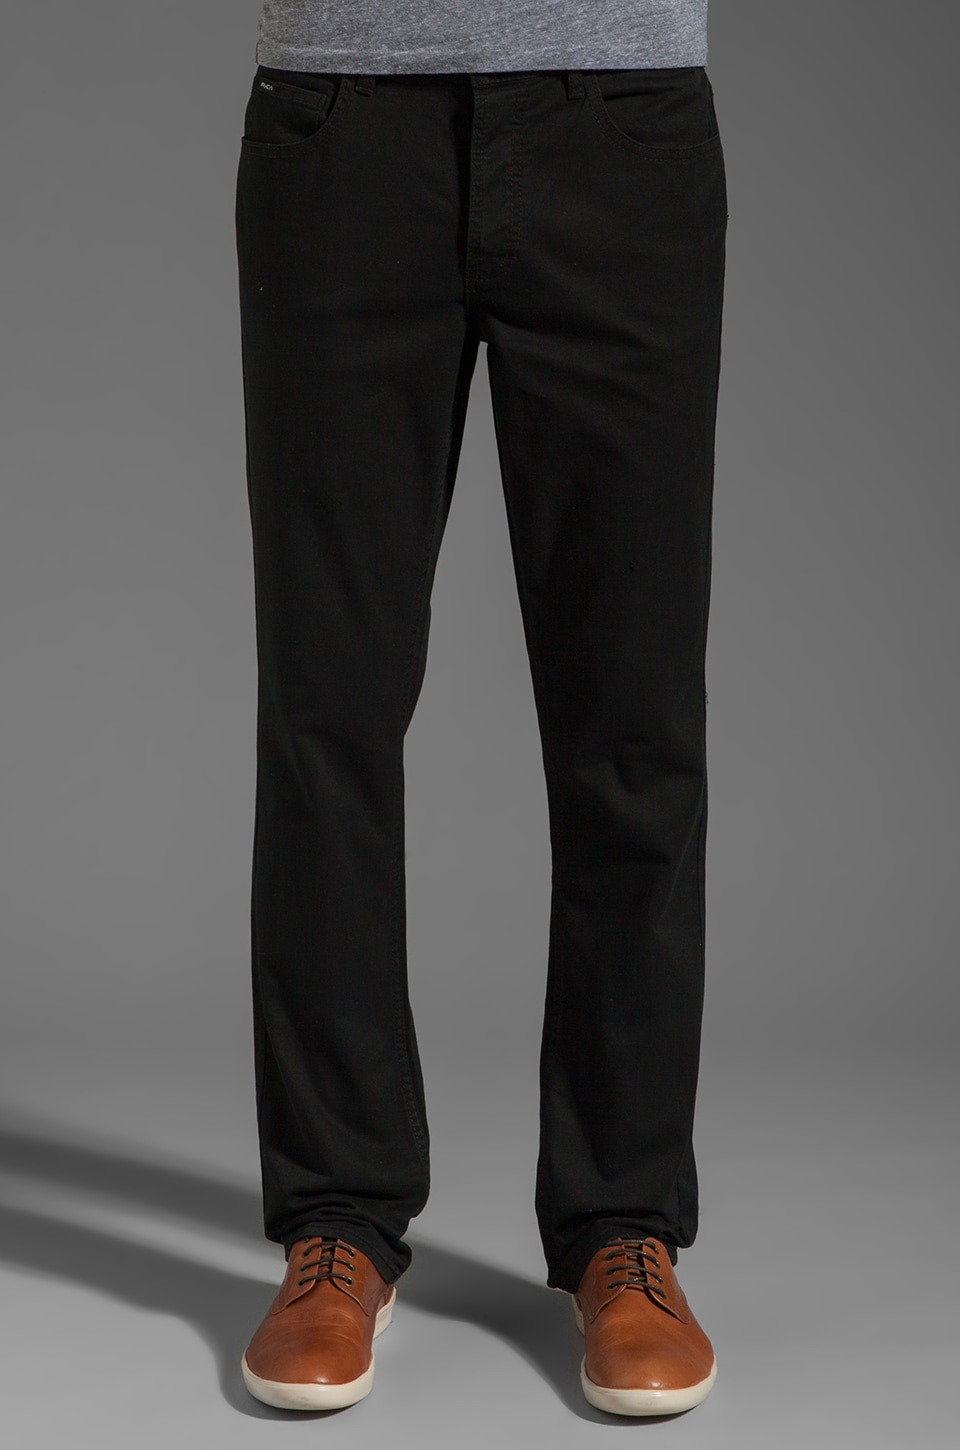 RVCA Stay RVCA Pant in Black